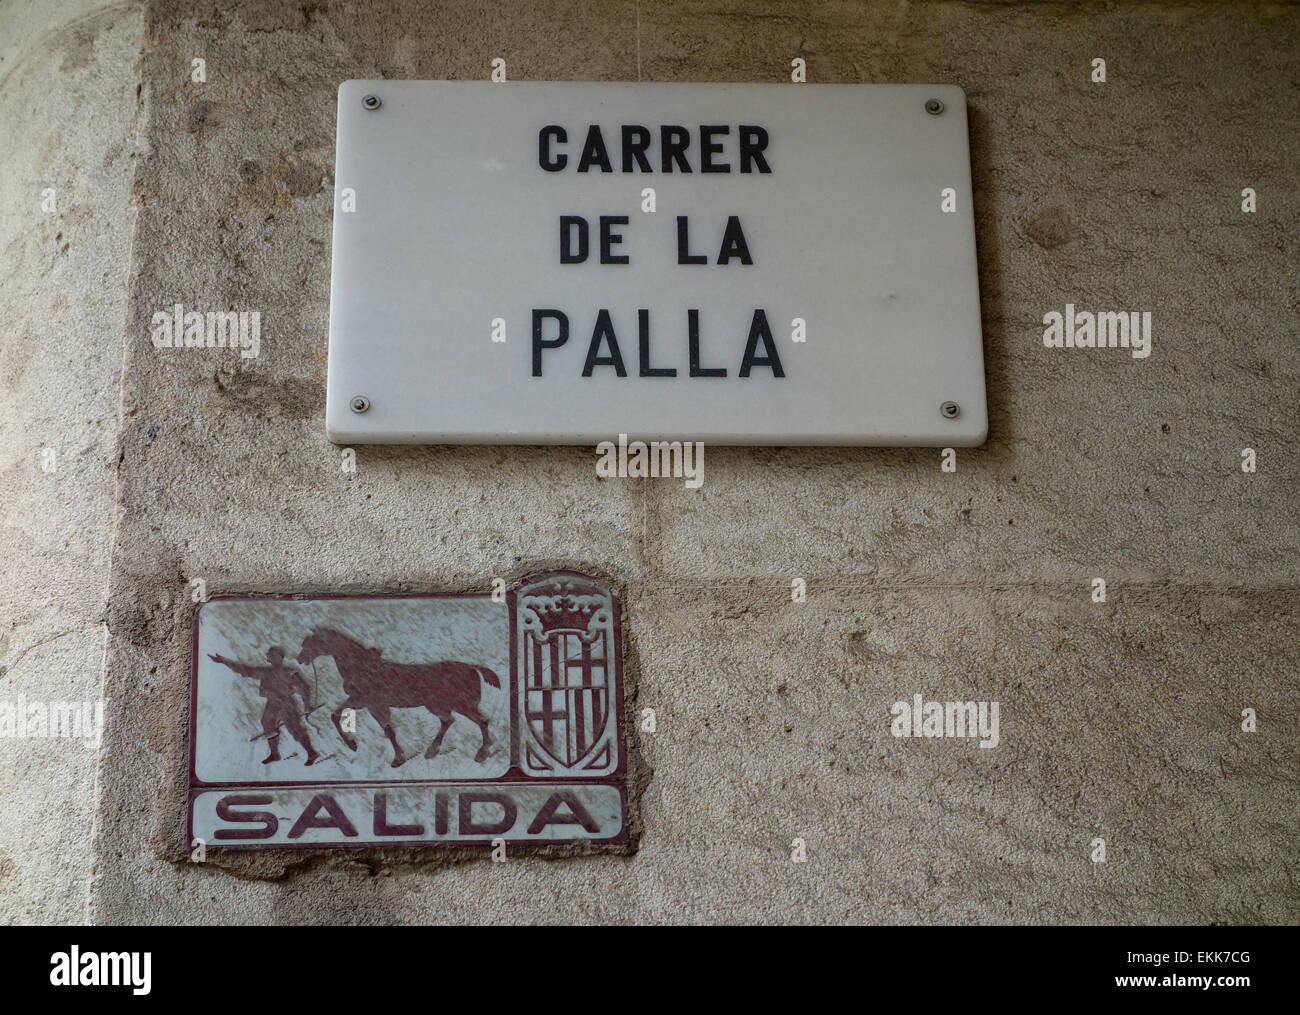 Carrer de la Palla and Salida (way out) street signs on wall in Gothic Quarter of Barcelona, Catalonia, Spain - Stock Image